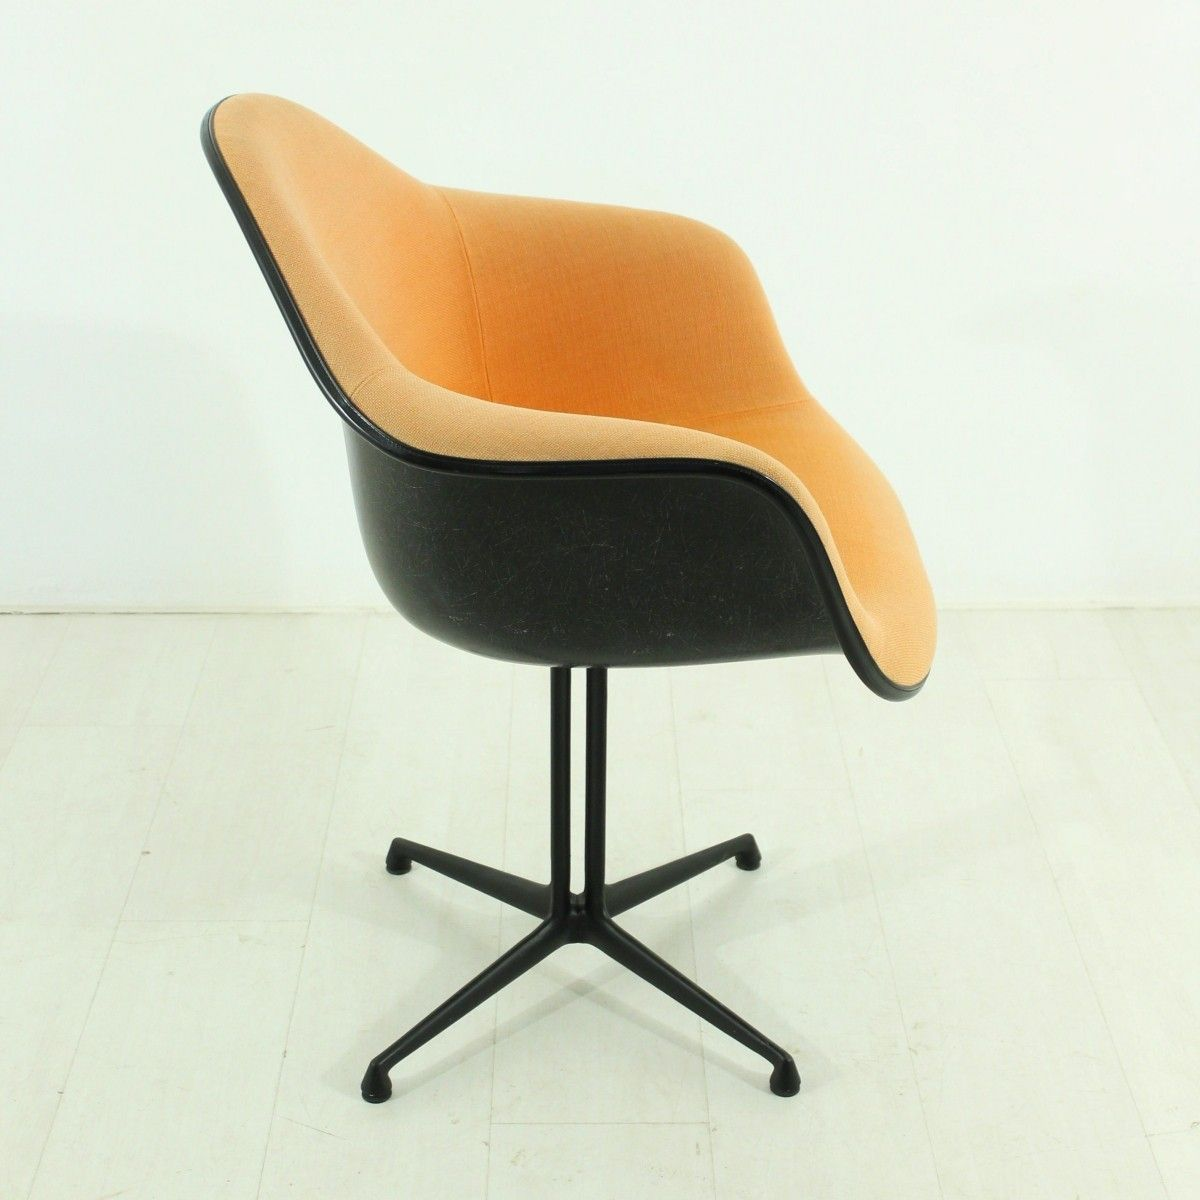 vintage terracotta la fonda chair by charles ray eames. Black Bedroom Furniture Sets. Home Design Ideas